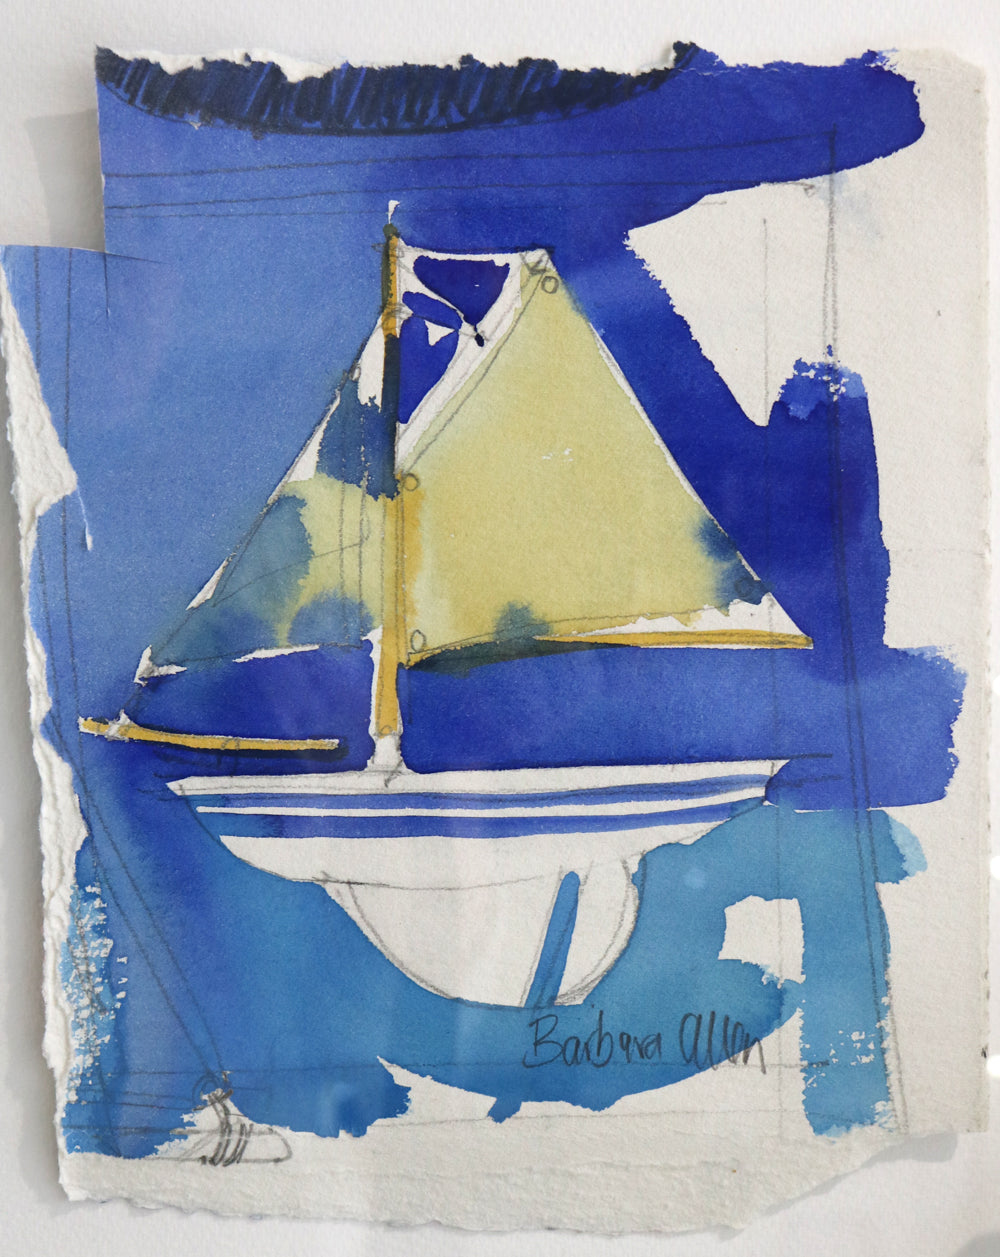 Barbara Allen - Pond Yacht - Watercolour